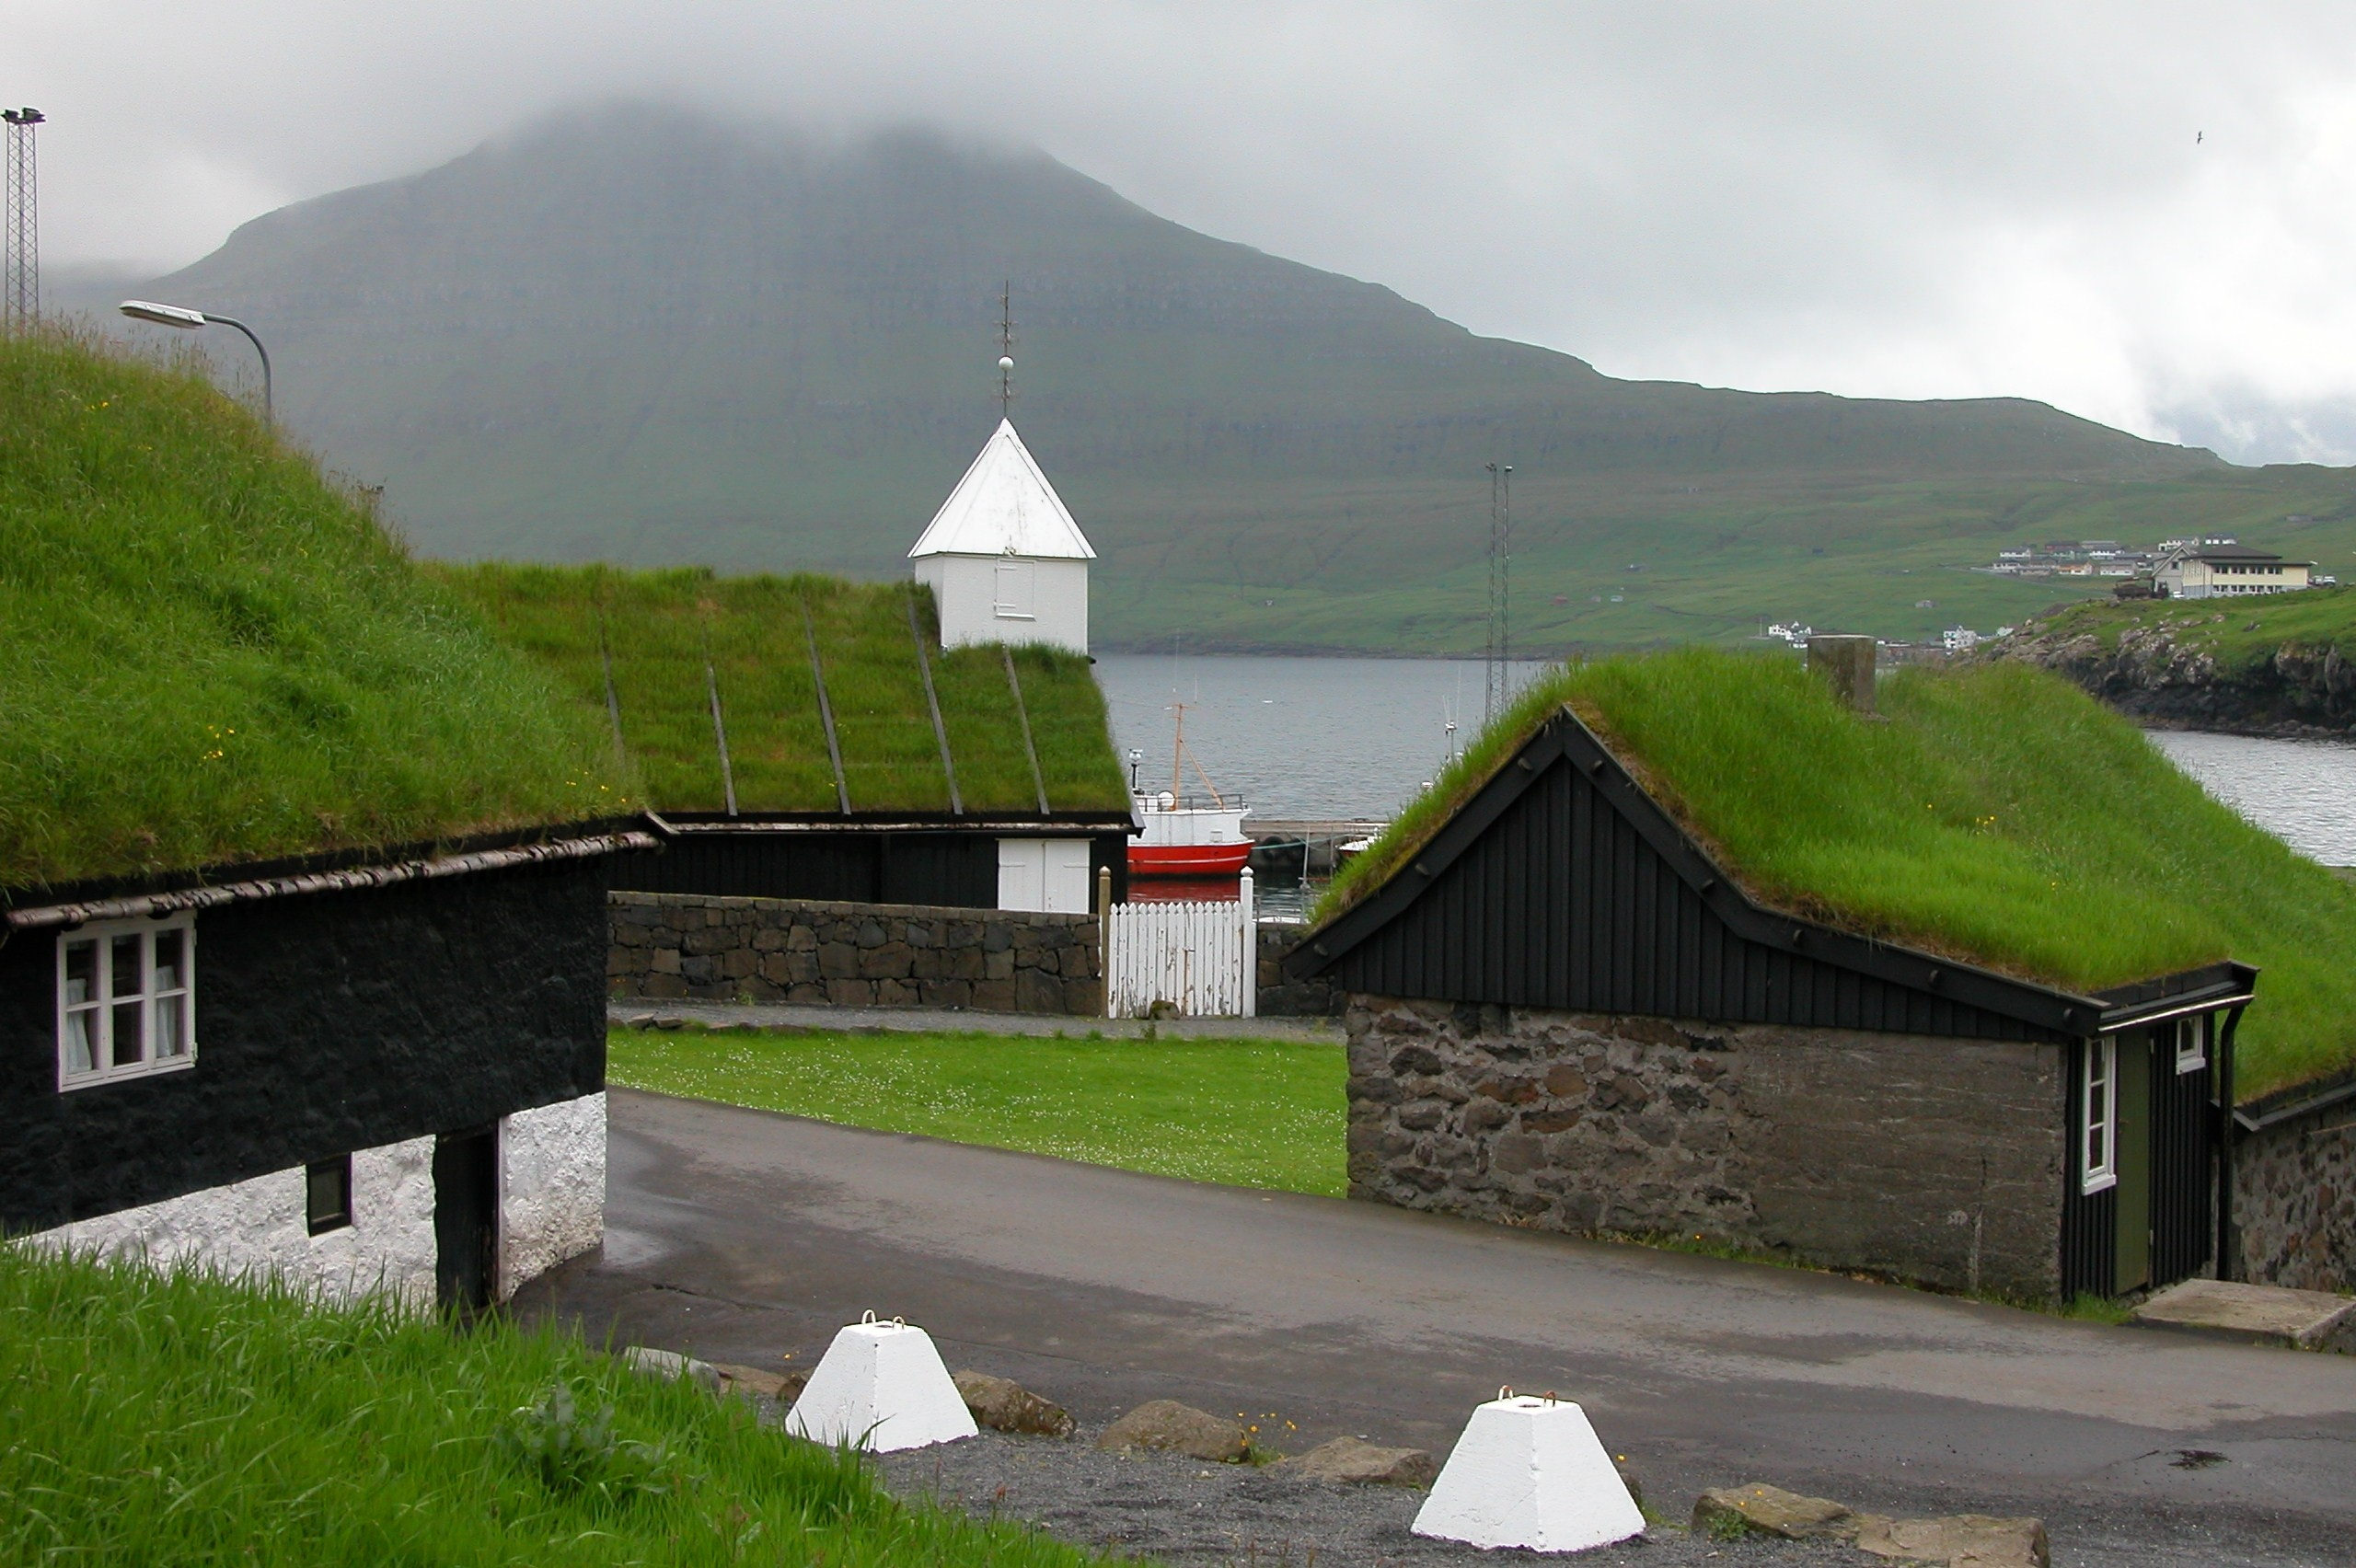 Nor°rag¸ta Faroe Islands 2